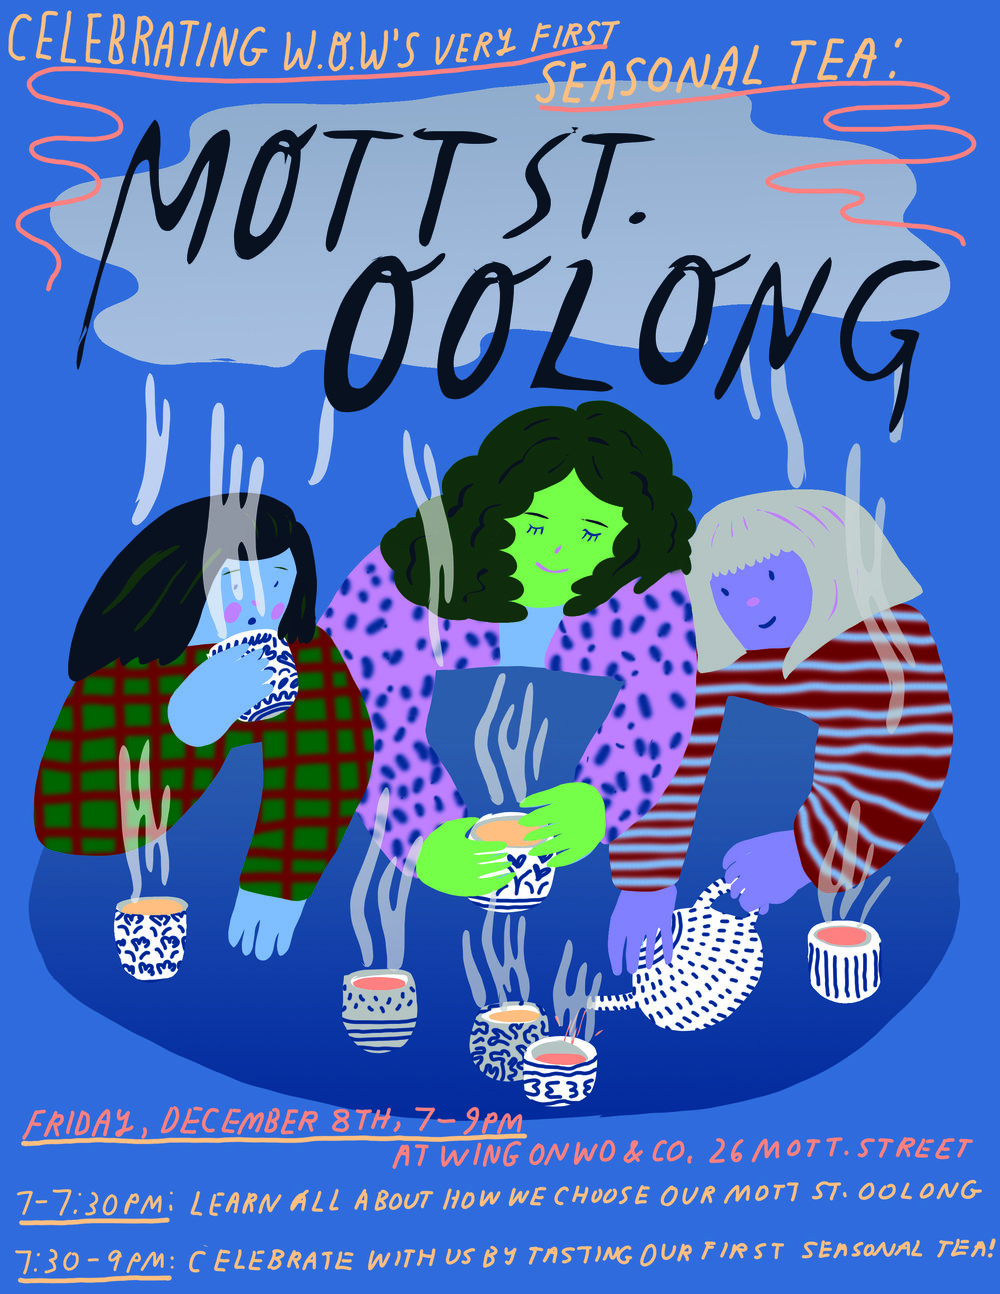 mott st oolong flyer3.jpg